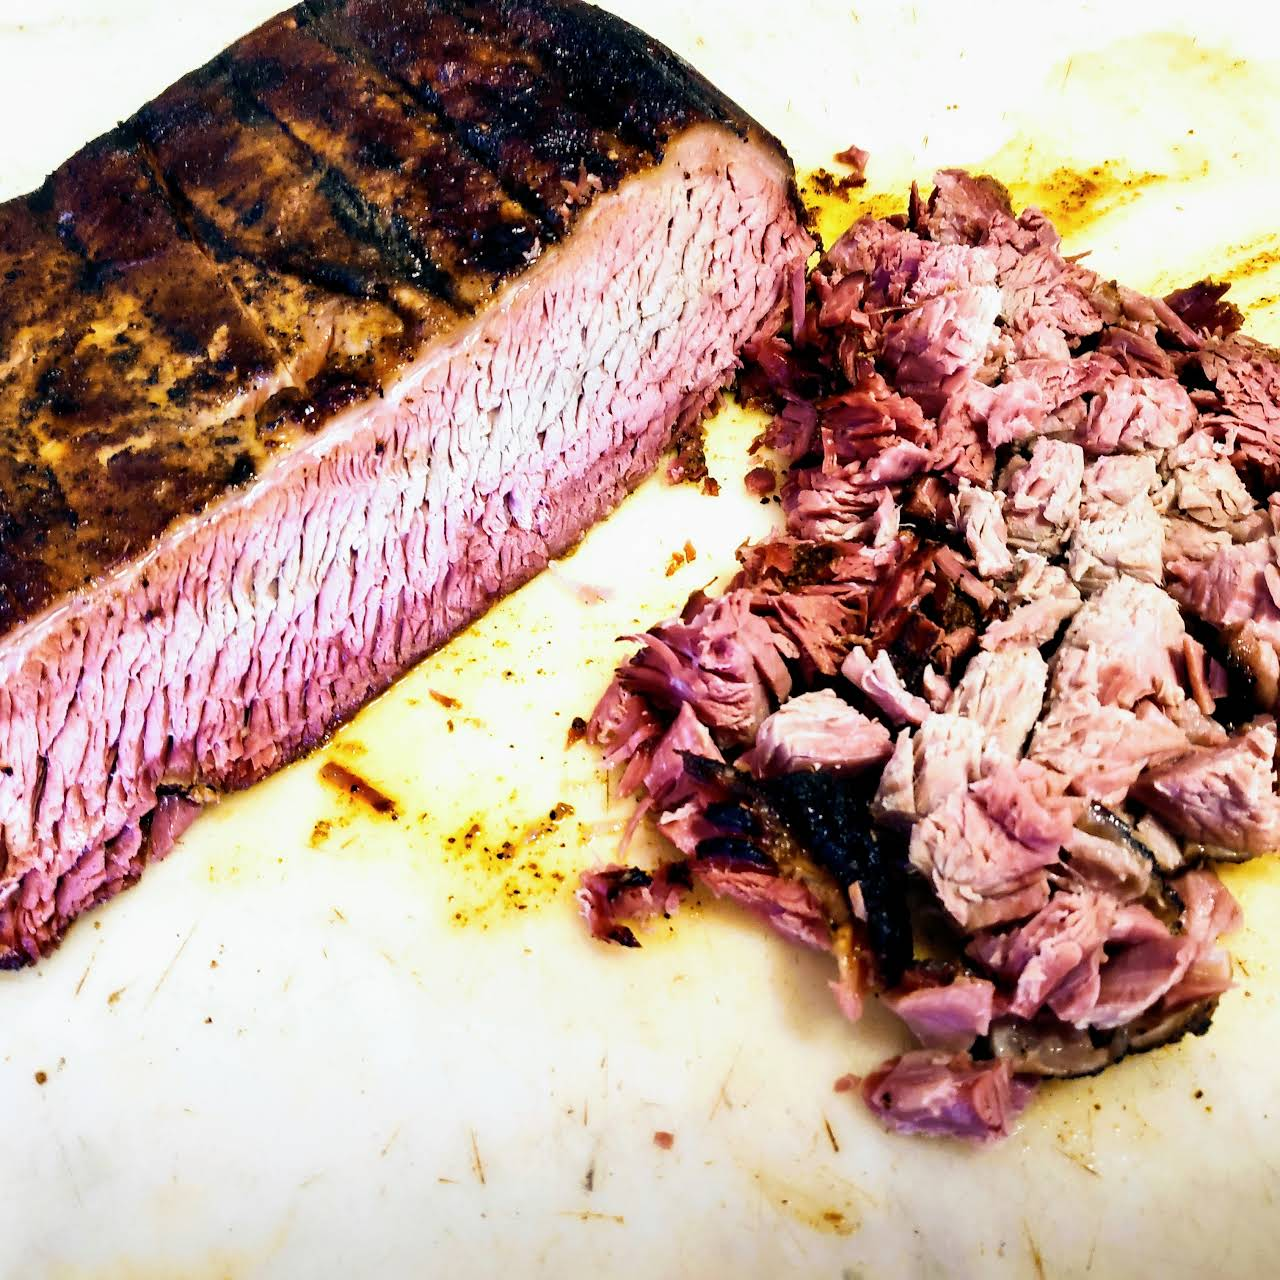 Bar-B-Q Barn - Barbecue Restaurant in Odessa with amazing ...